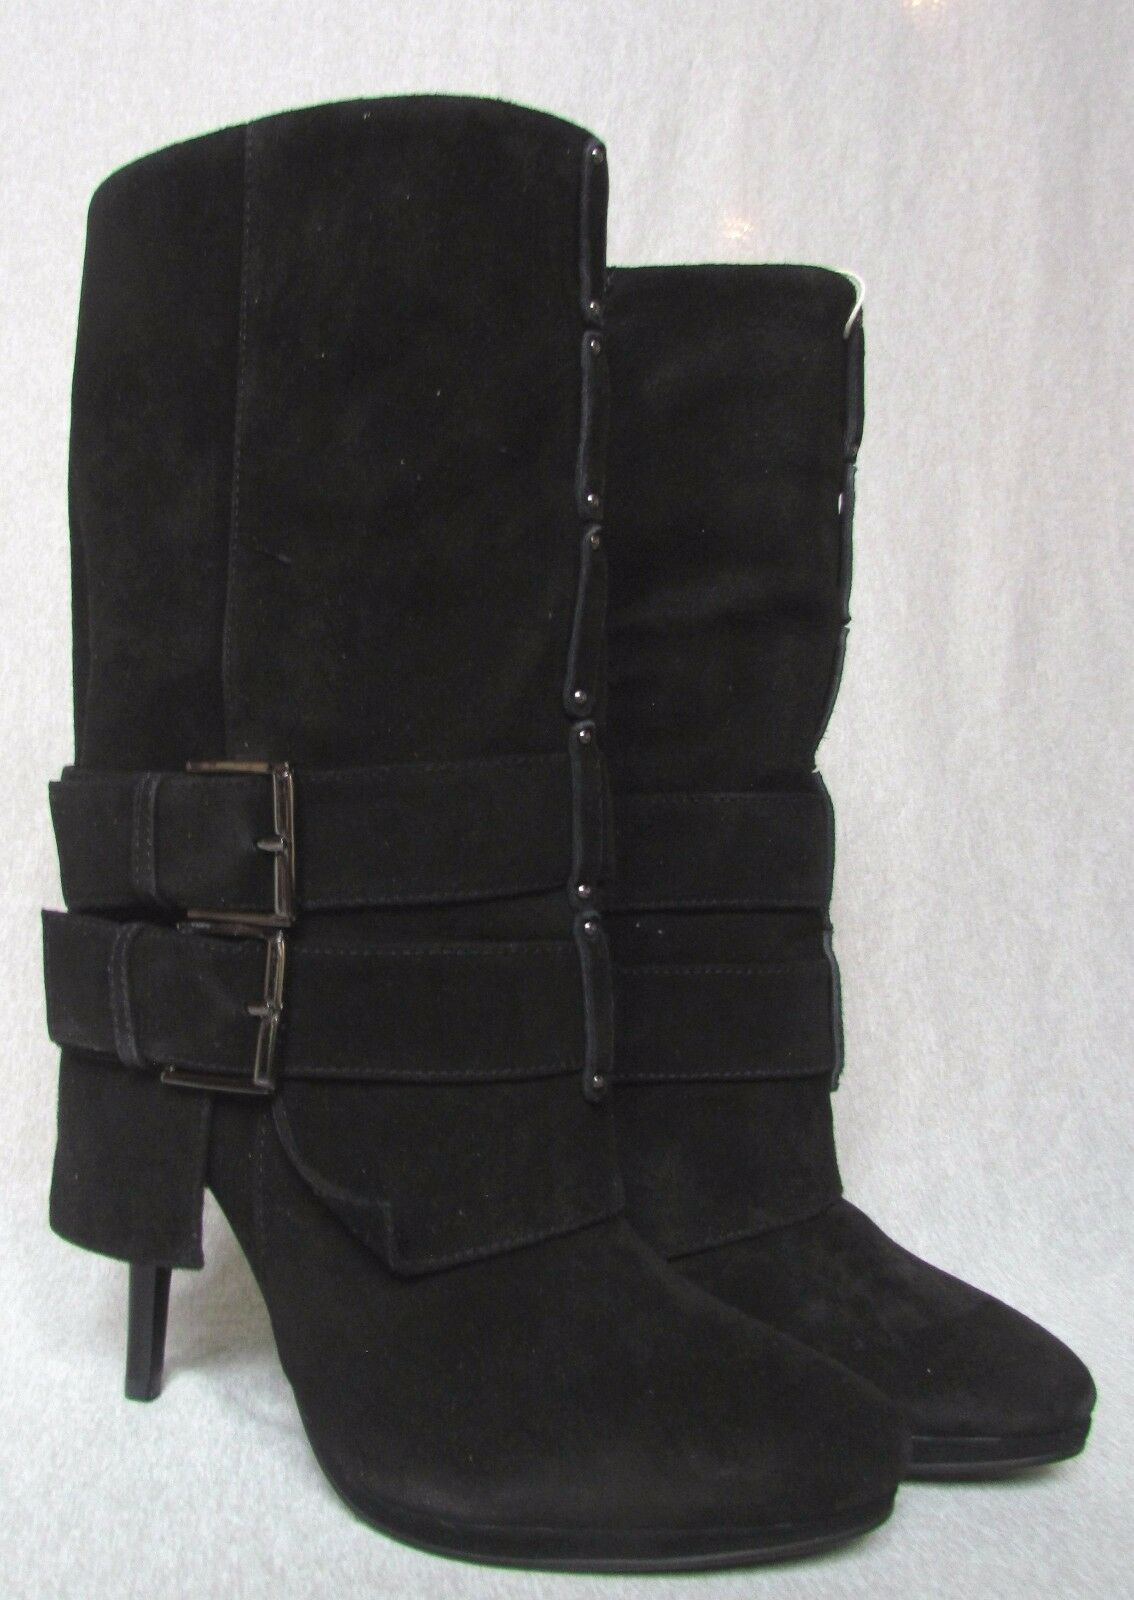 presa GIUSEPPE ZANOTTI for BALMAIN nero SUEDE LEATHER stivali MSRP    1750  l'ultimo